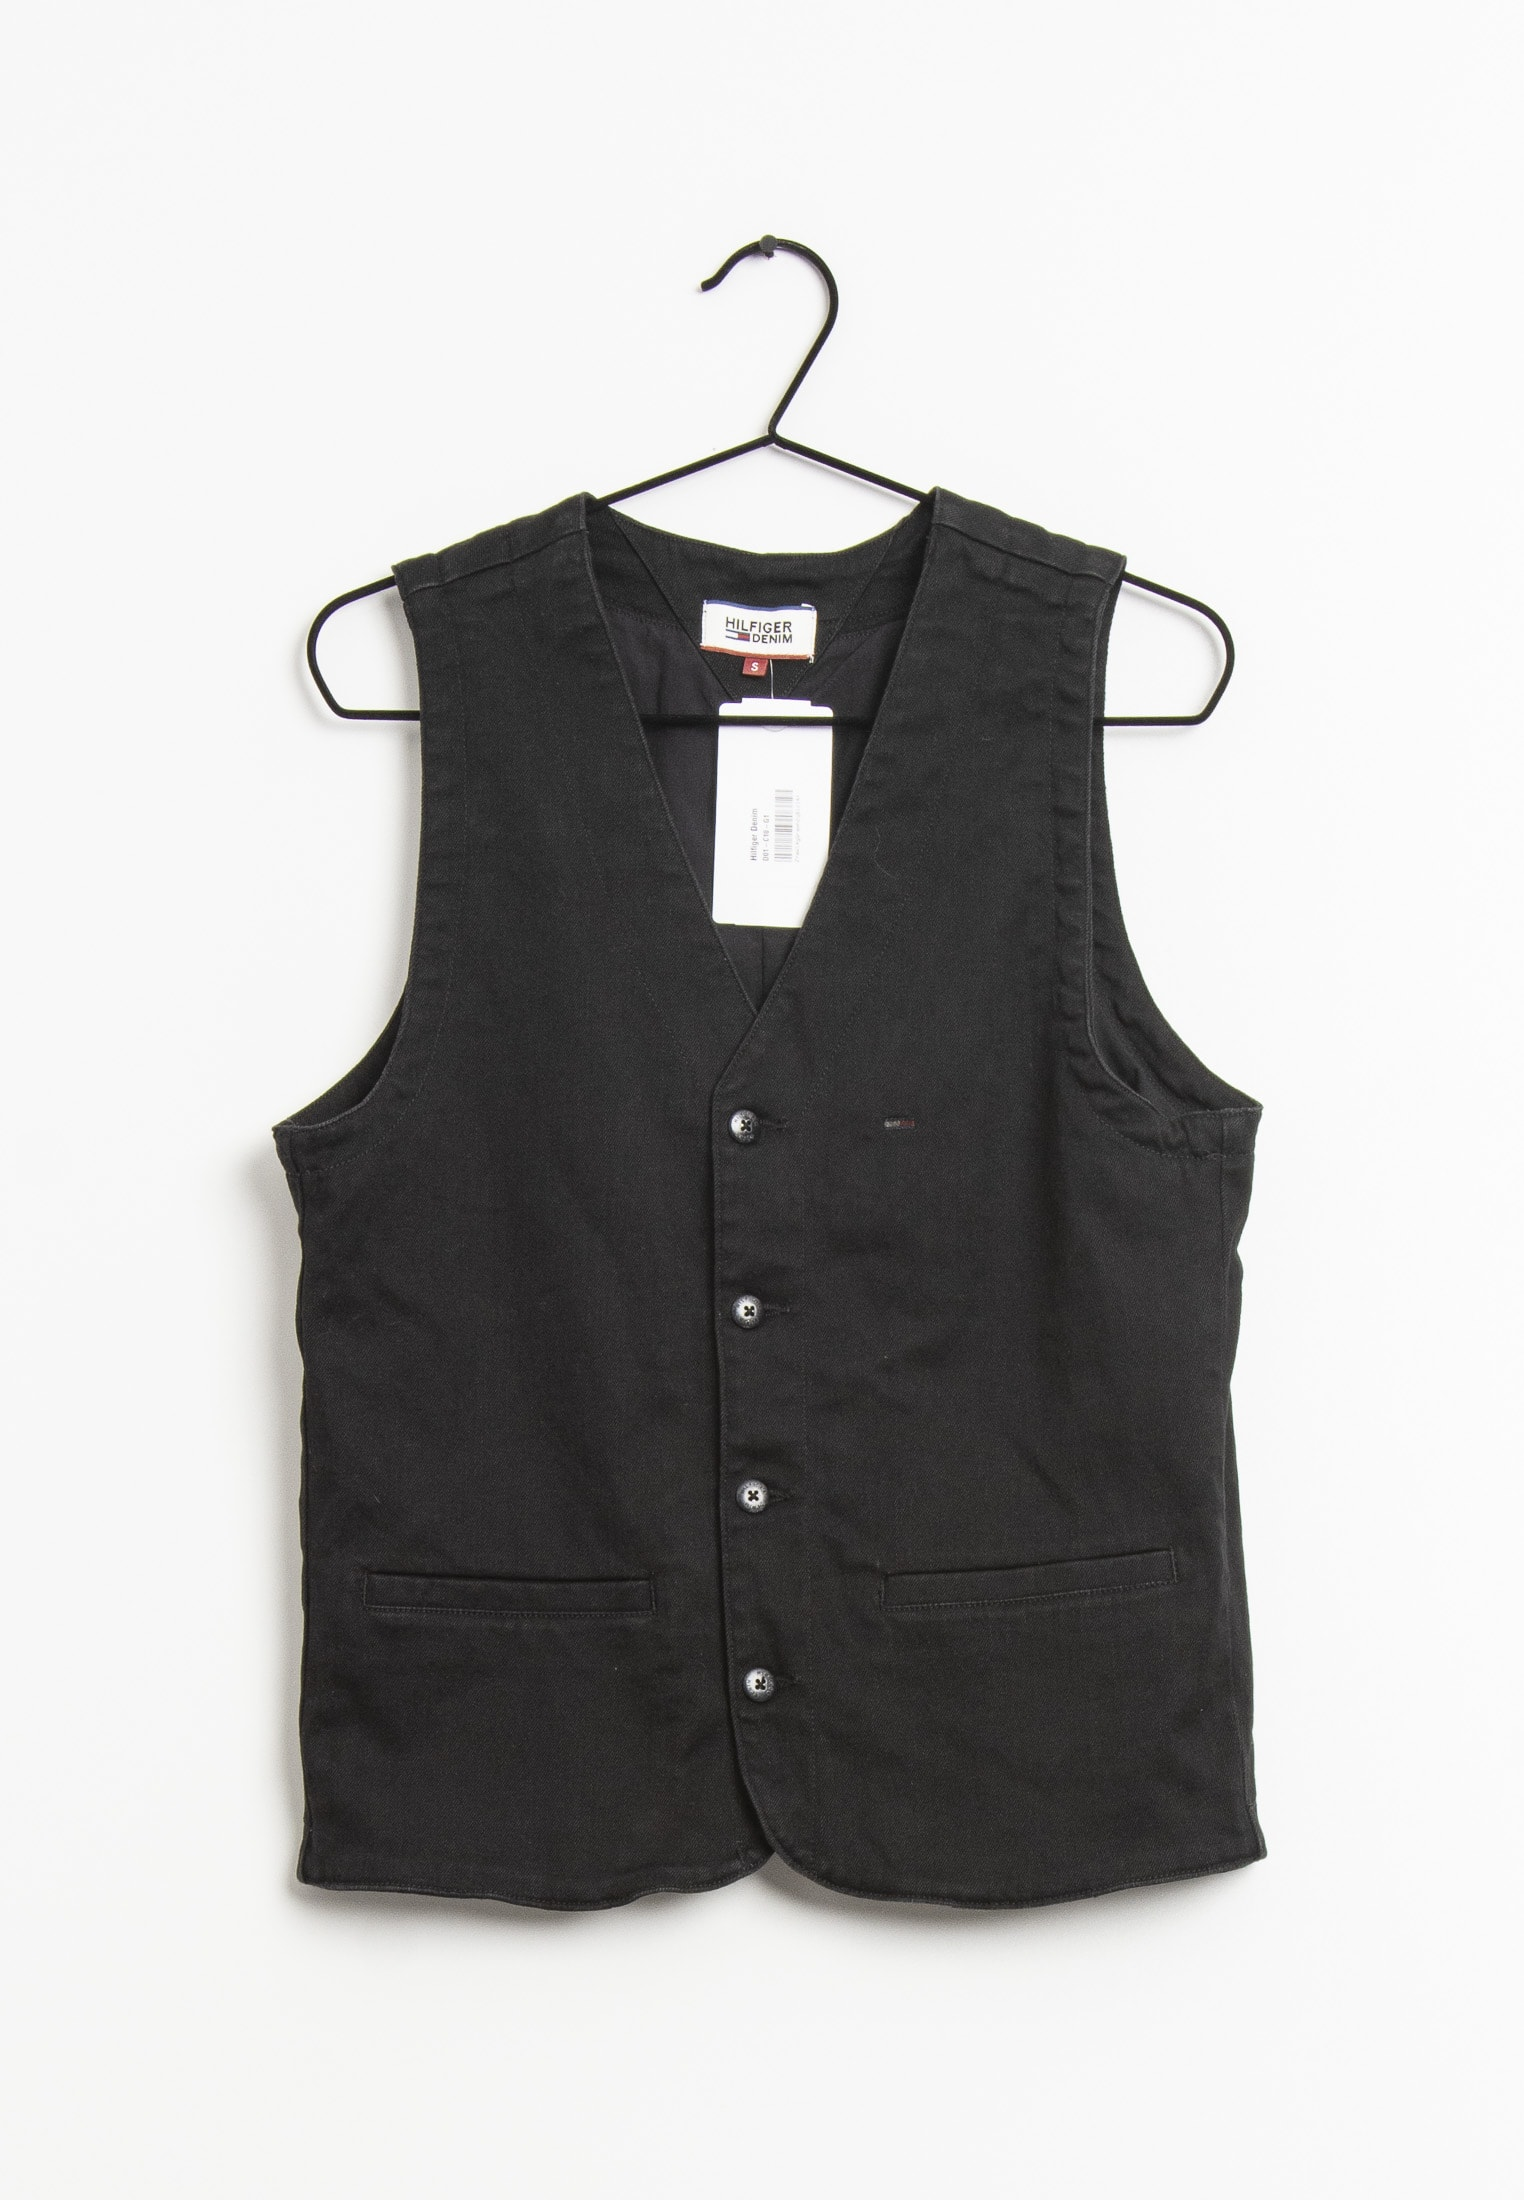 Hilfiger Denim vest, sort, S